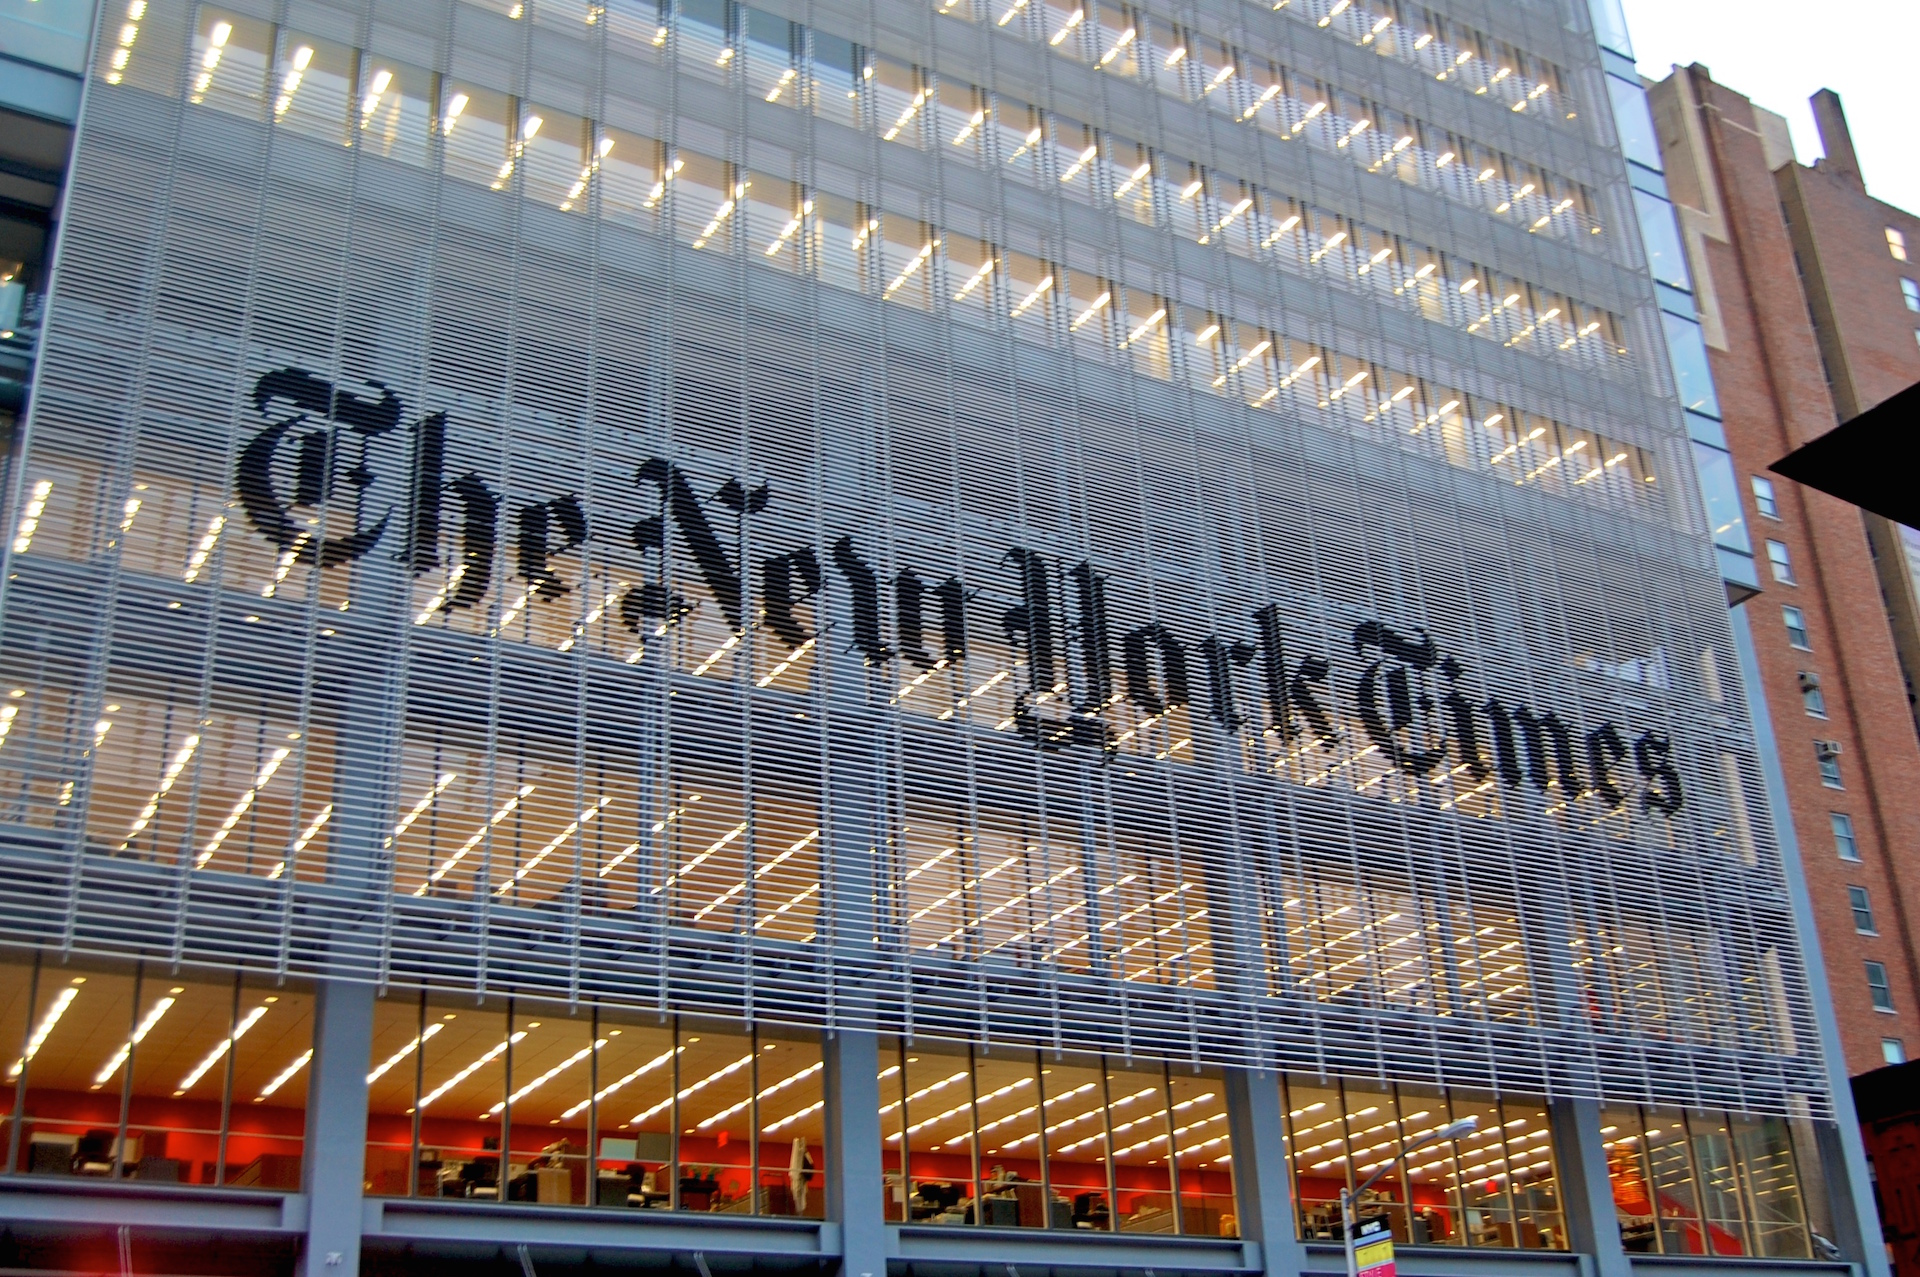 Get your news briefing for free with NYT Now